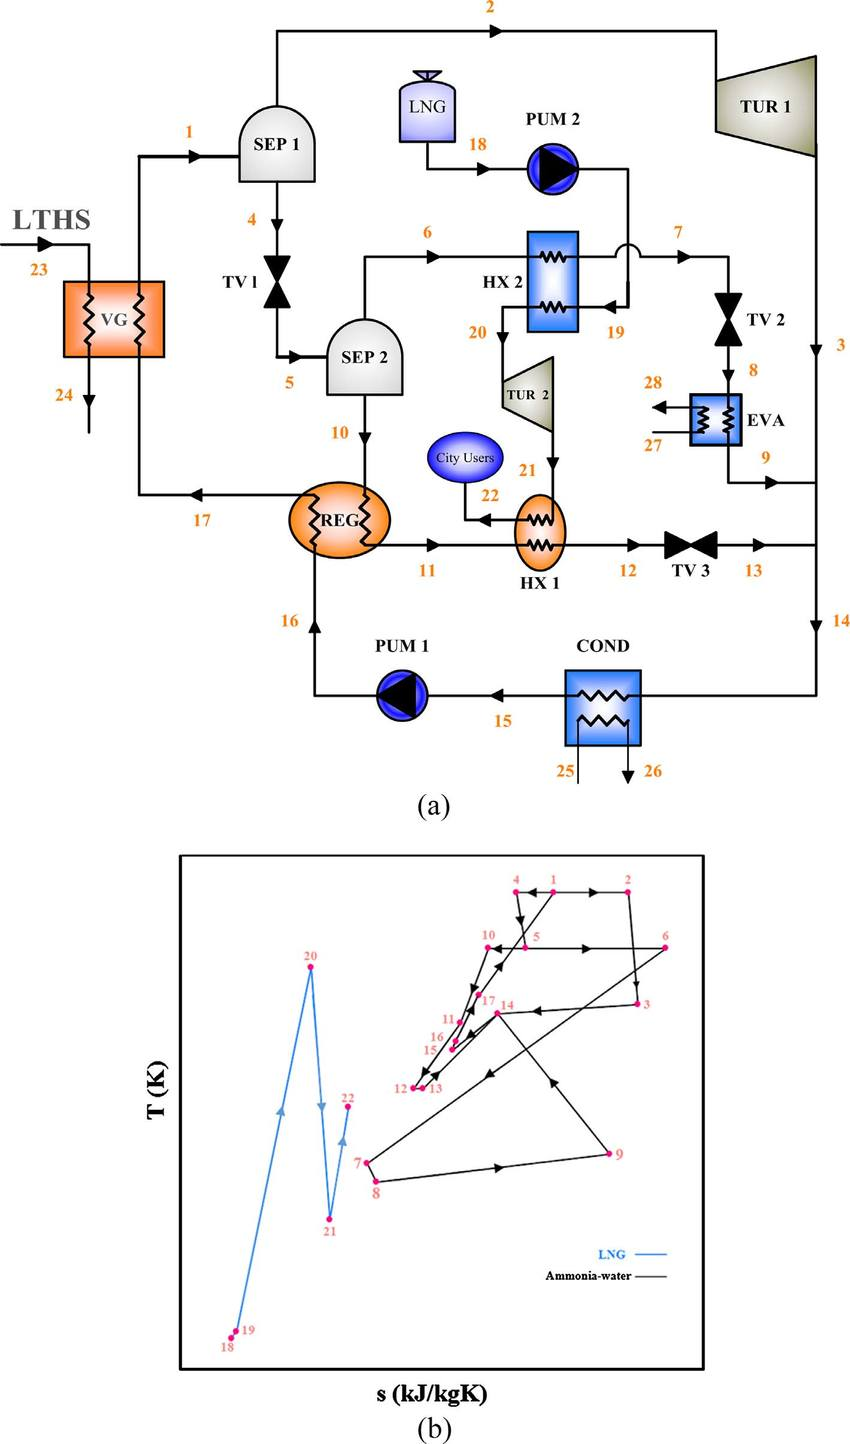 hight resolution of schematic diagram of the a combined cooling and power cycle and b